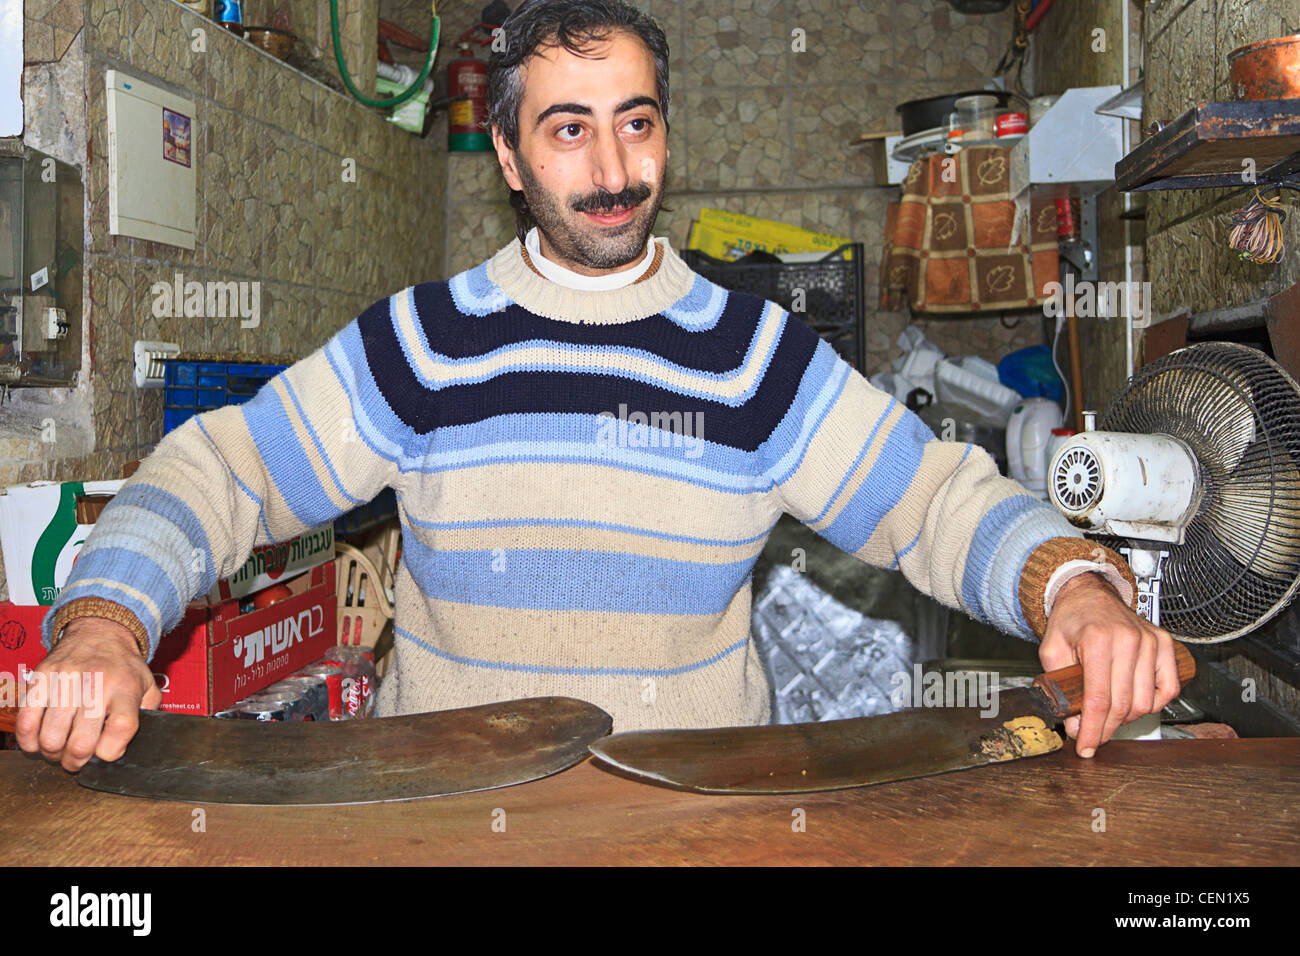 Arab man shows off his kebab knives which are 280 years old. He owns a kebab shop in the Old City of Jerusalem. - Stock Image